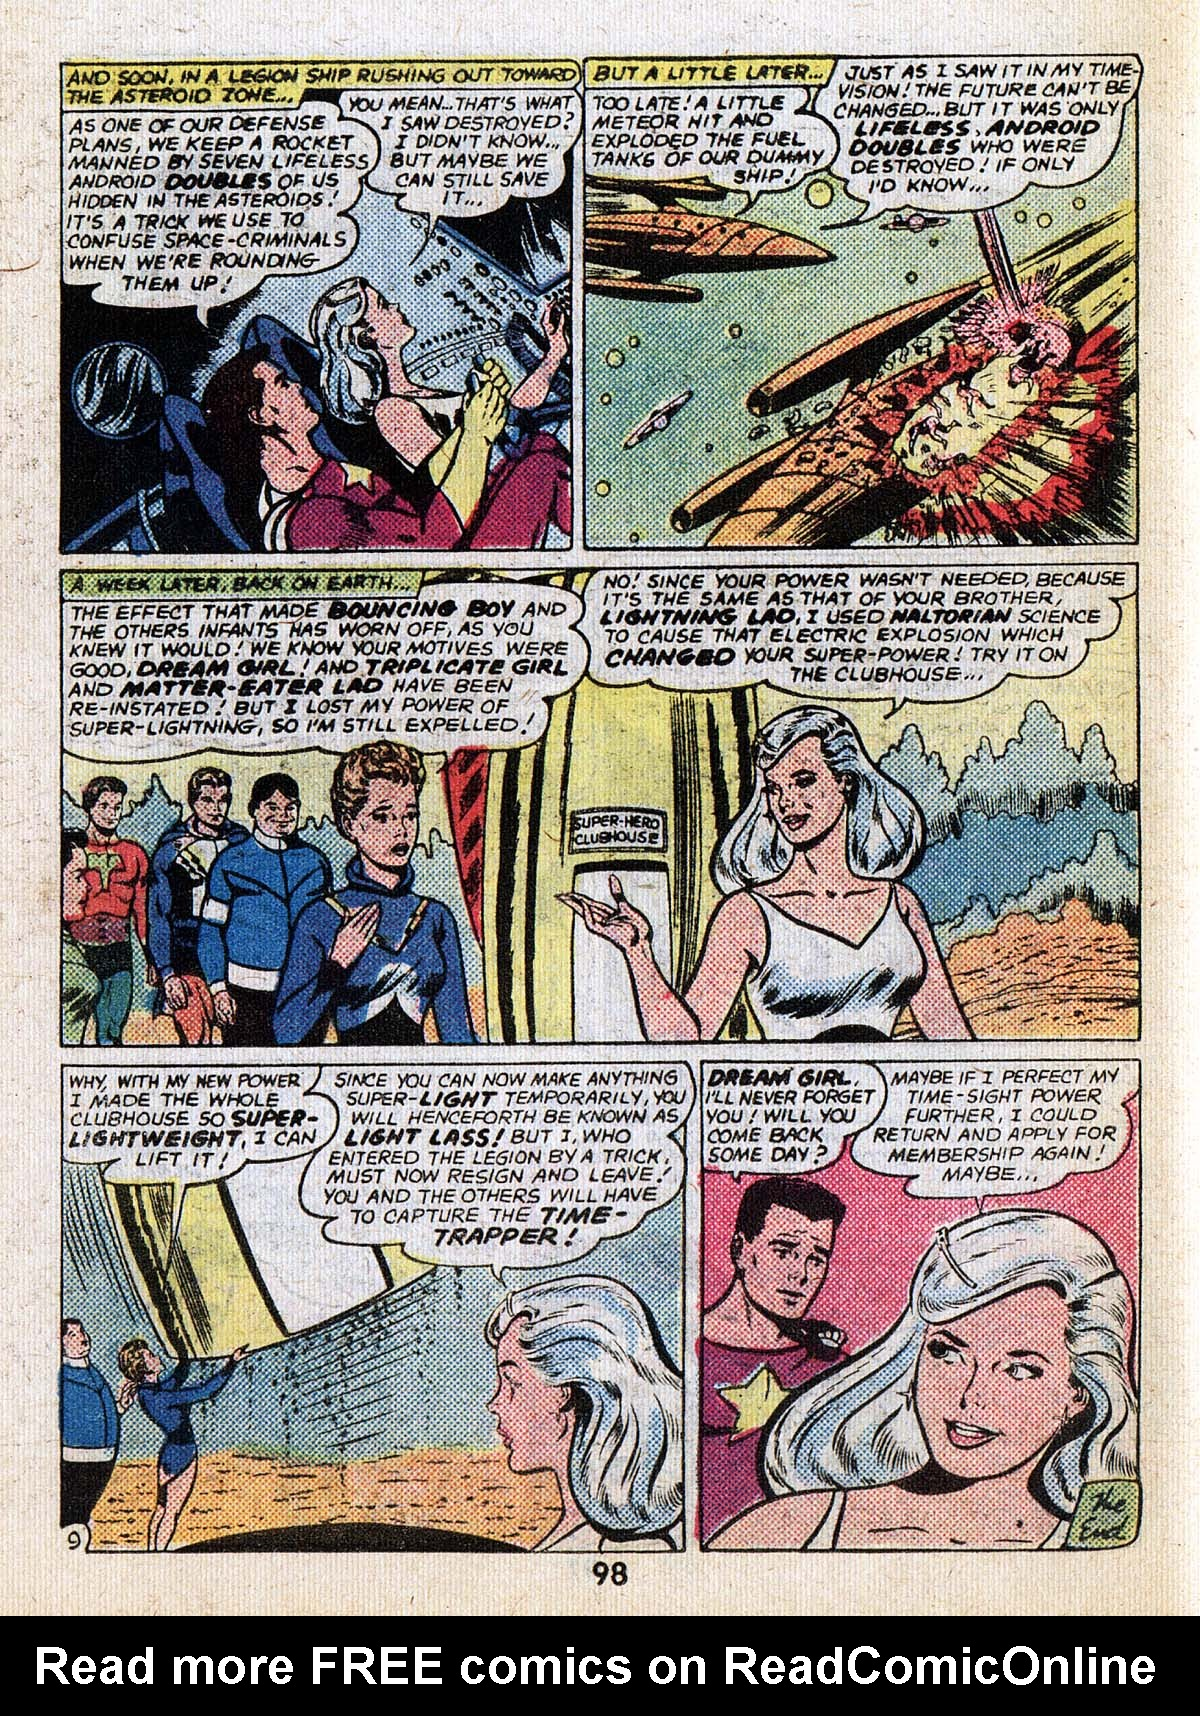 Read online Adventure Comics (1938) comic -  Issue #502 - 98